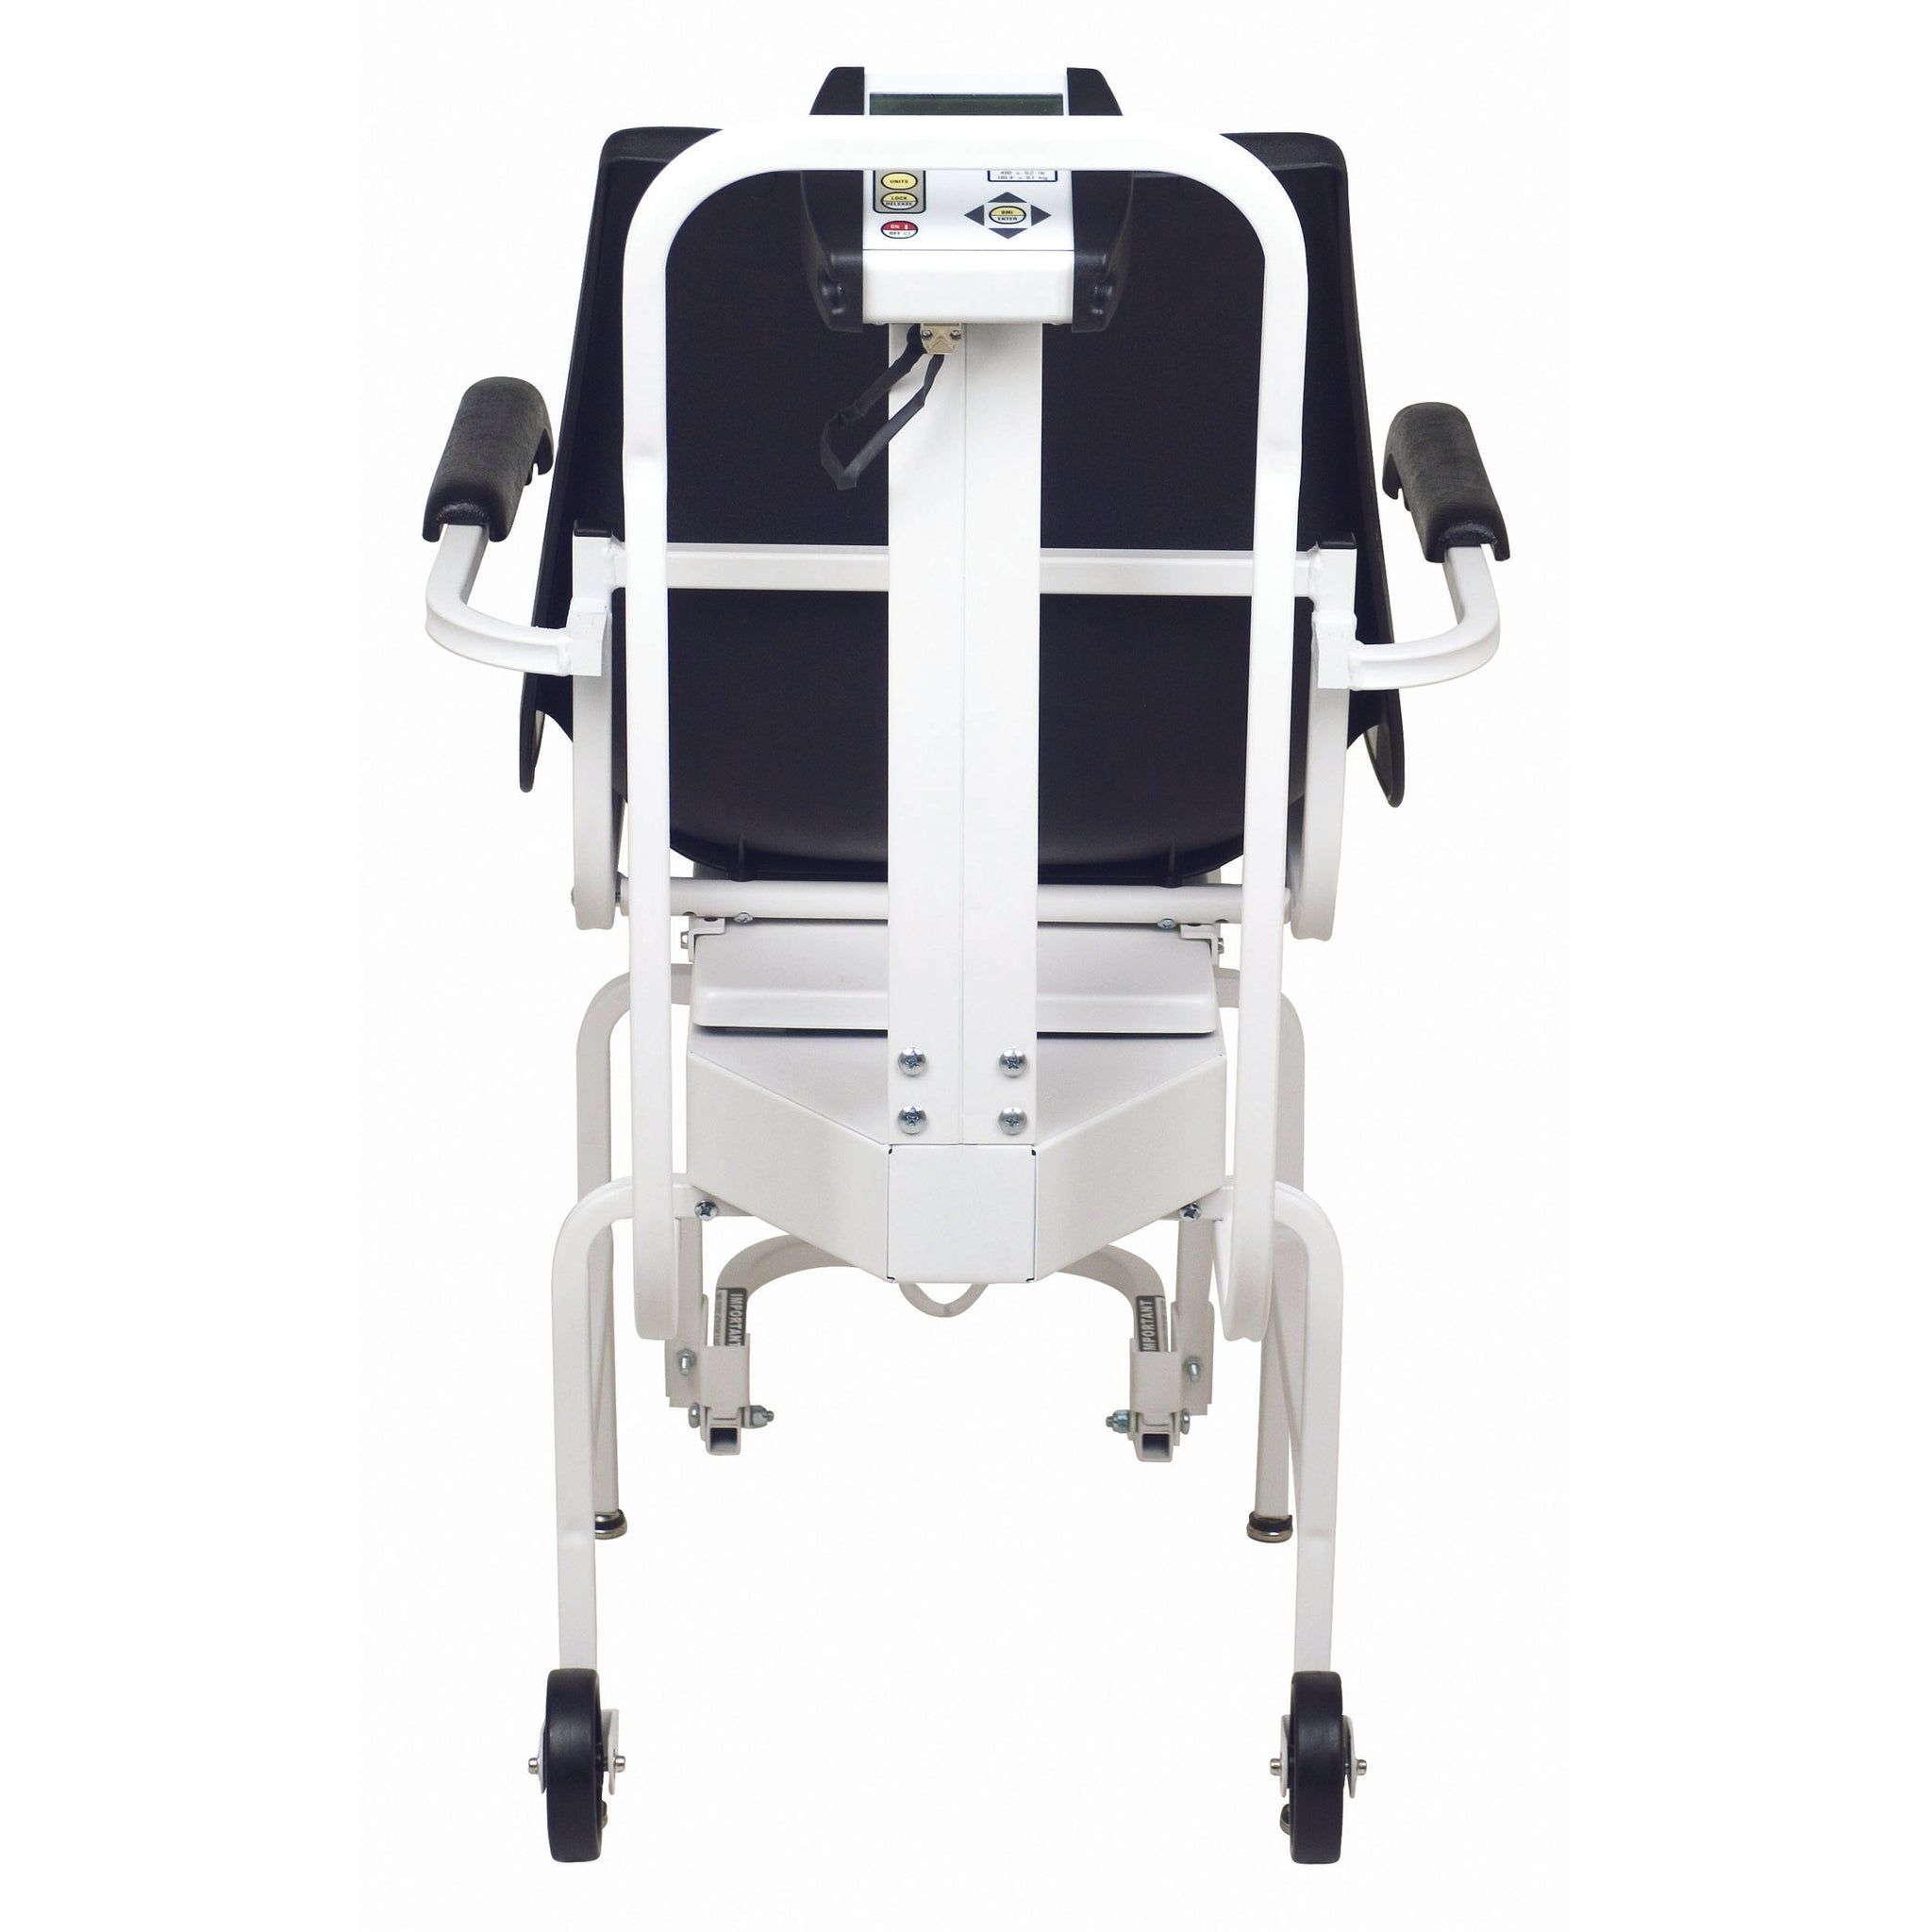 Detecto Digital Chair Scale